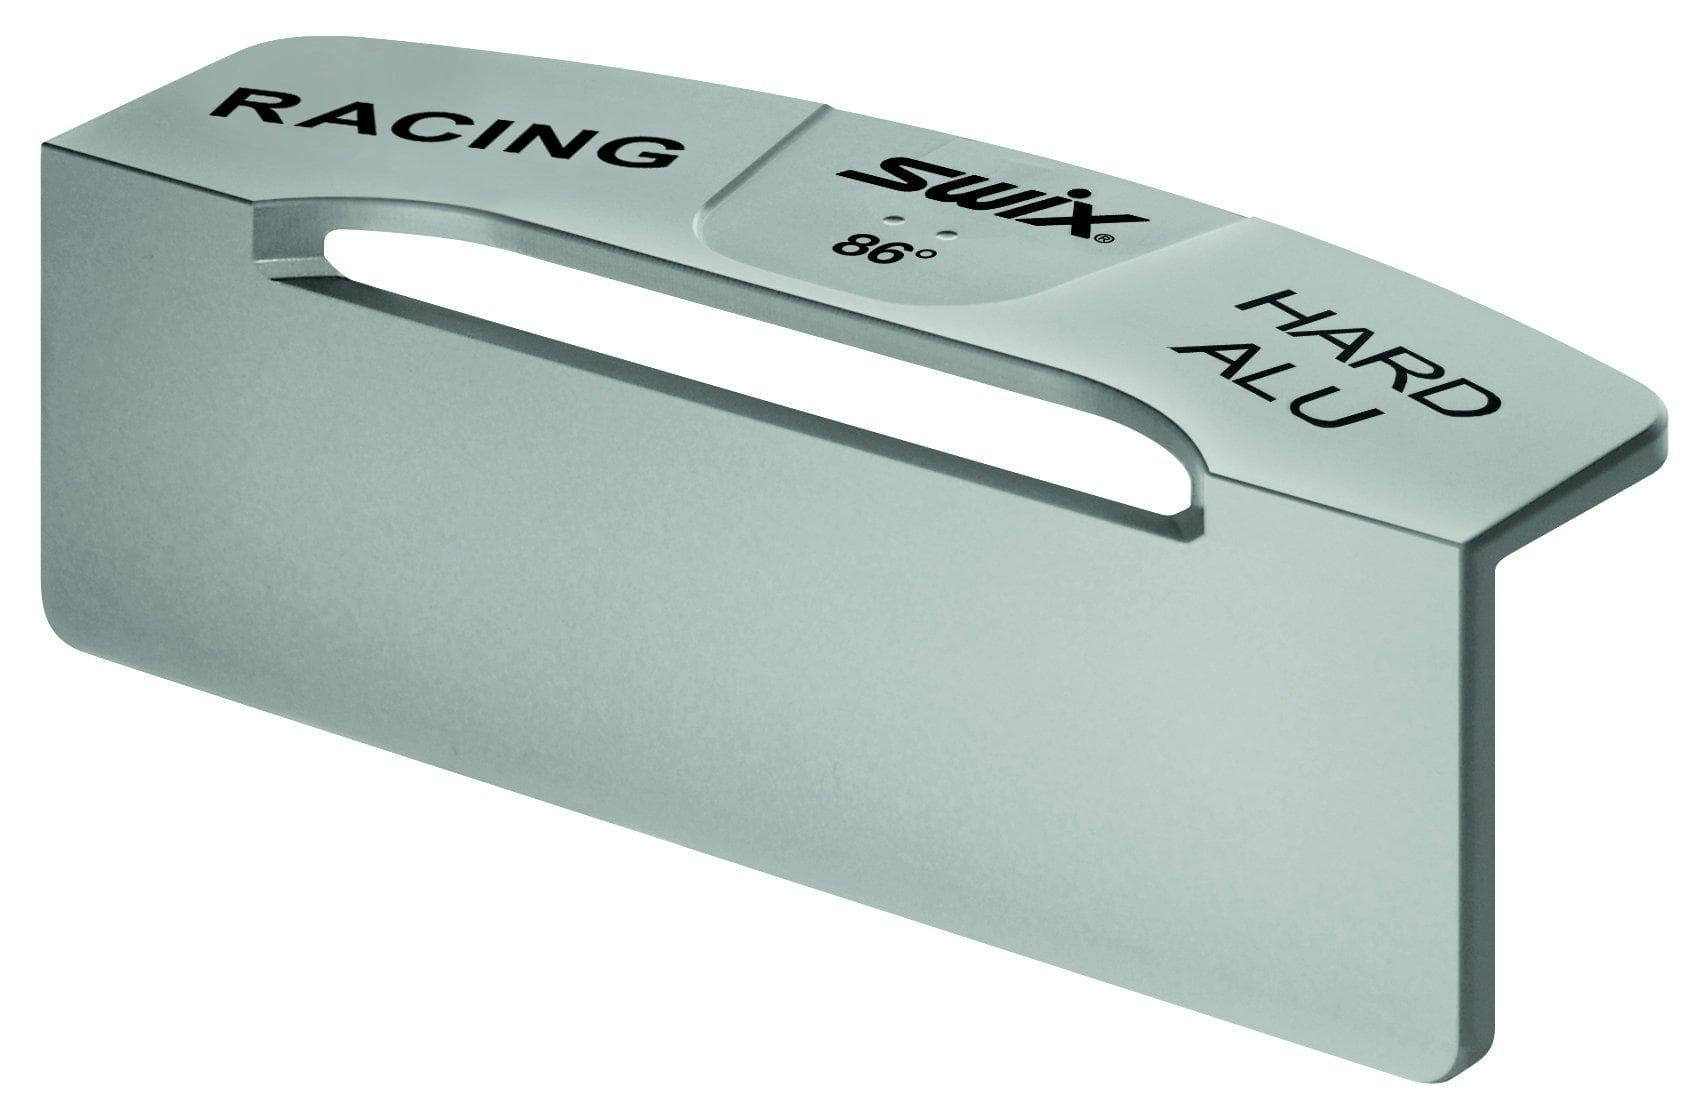 Swix Racing Aluminum Side Edge File Guide